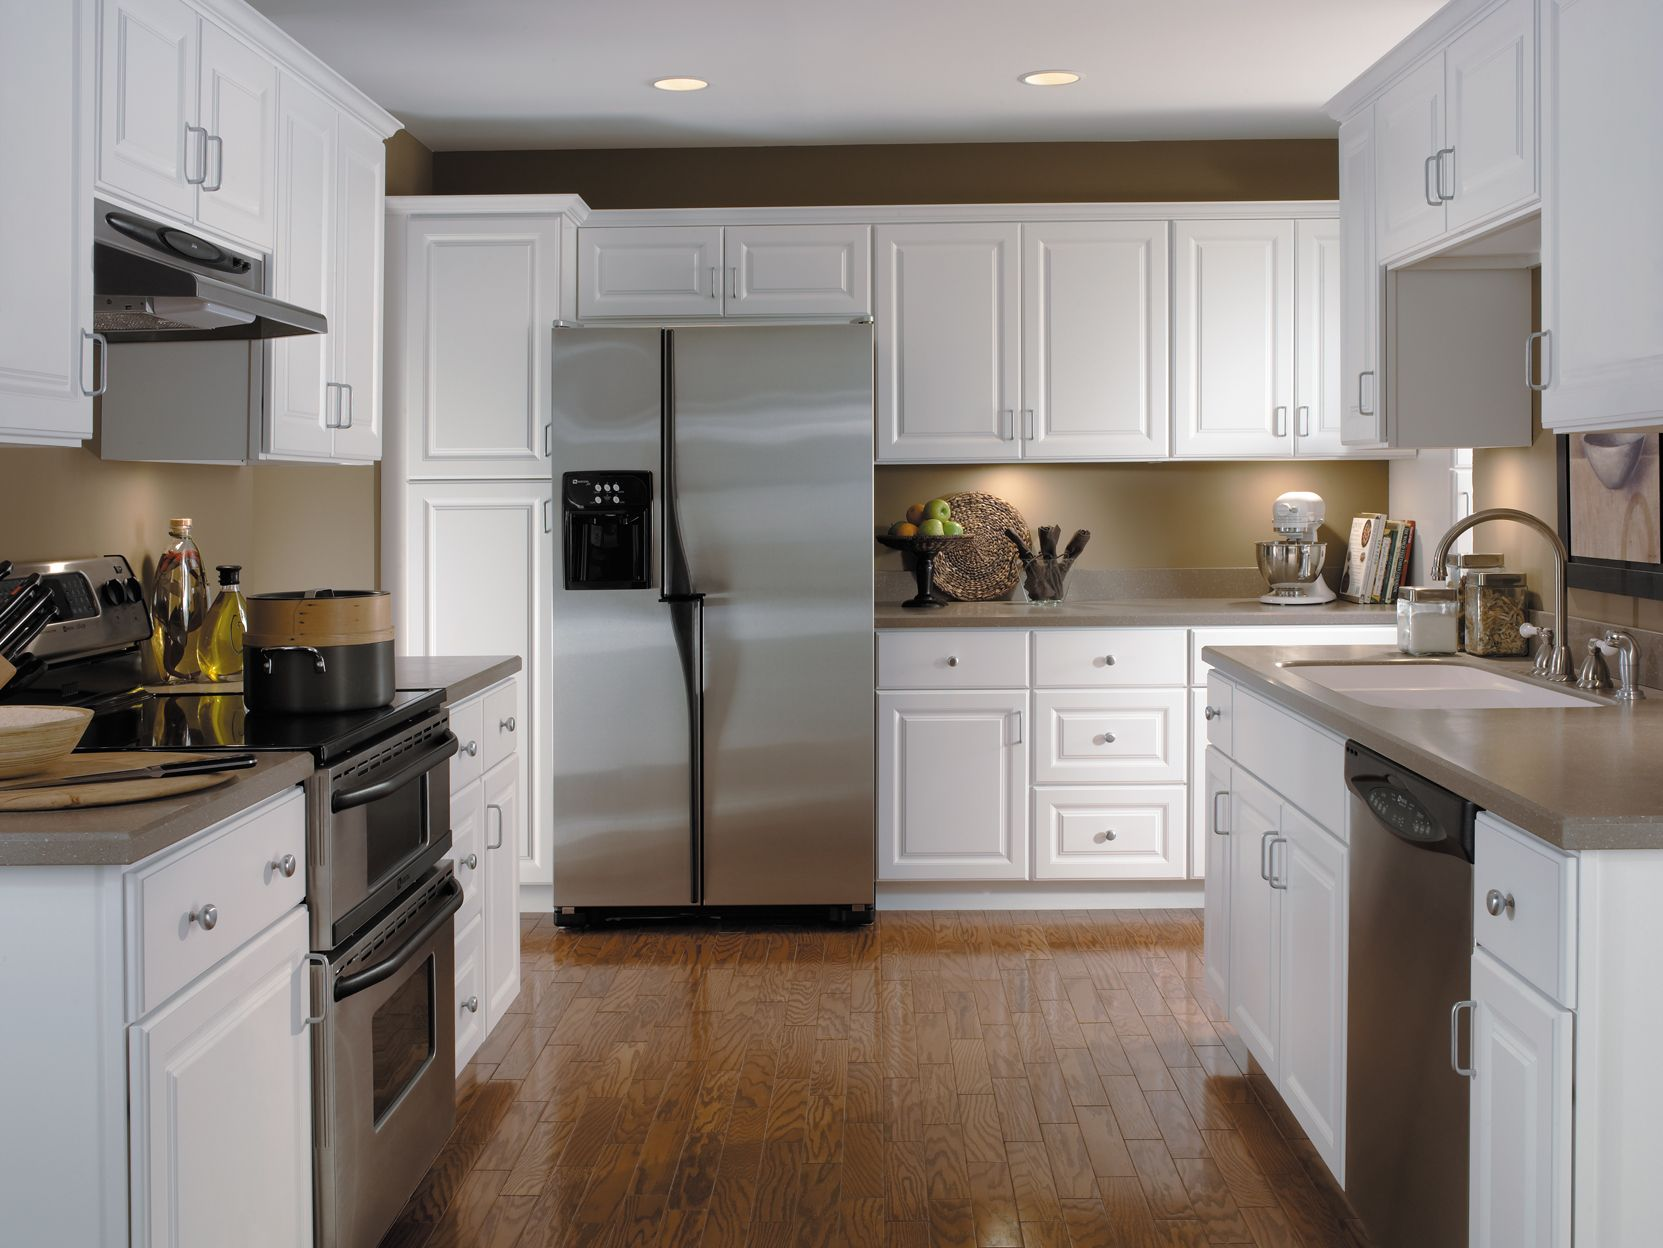 Kitchen Product Gallery Kitchen Cabinetry Design Kitchen Cabinet Styles Kitchen Layout